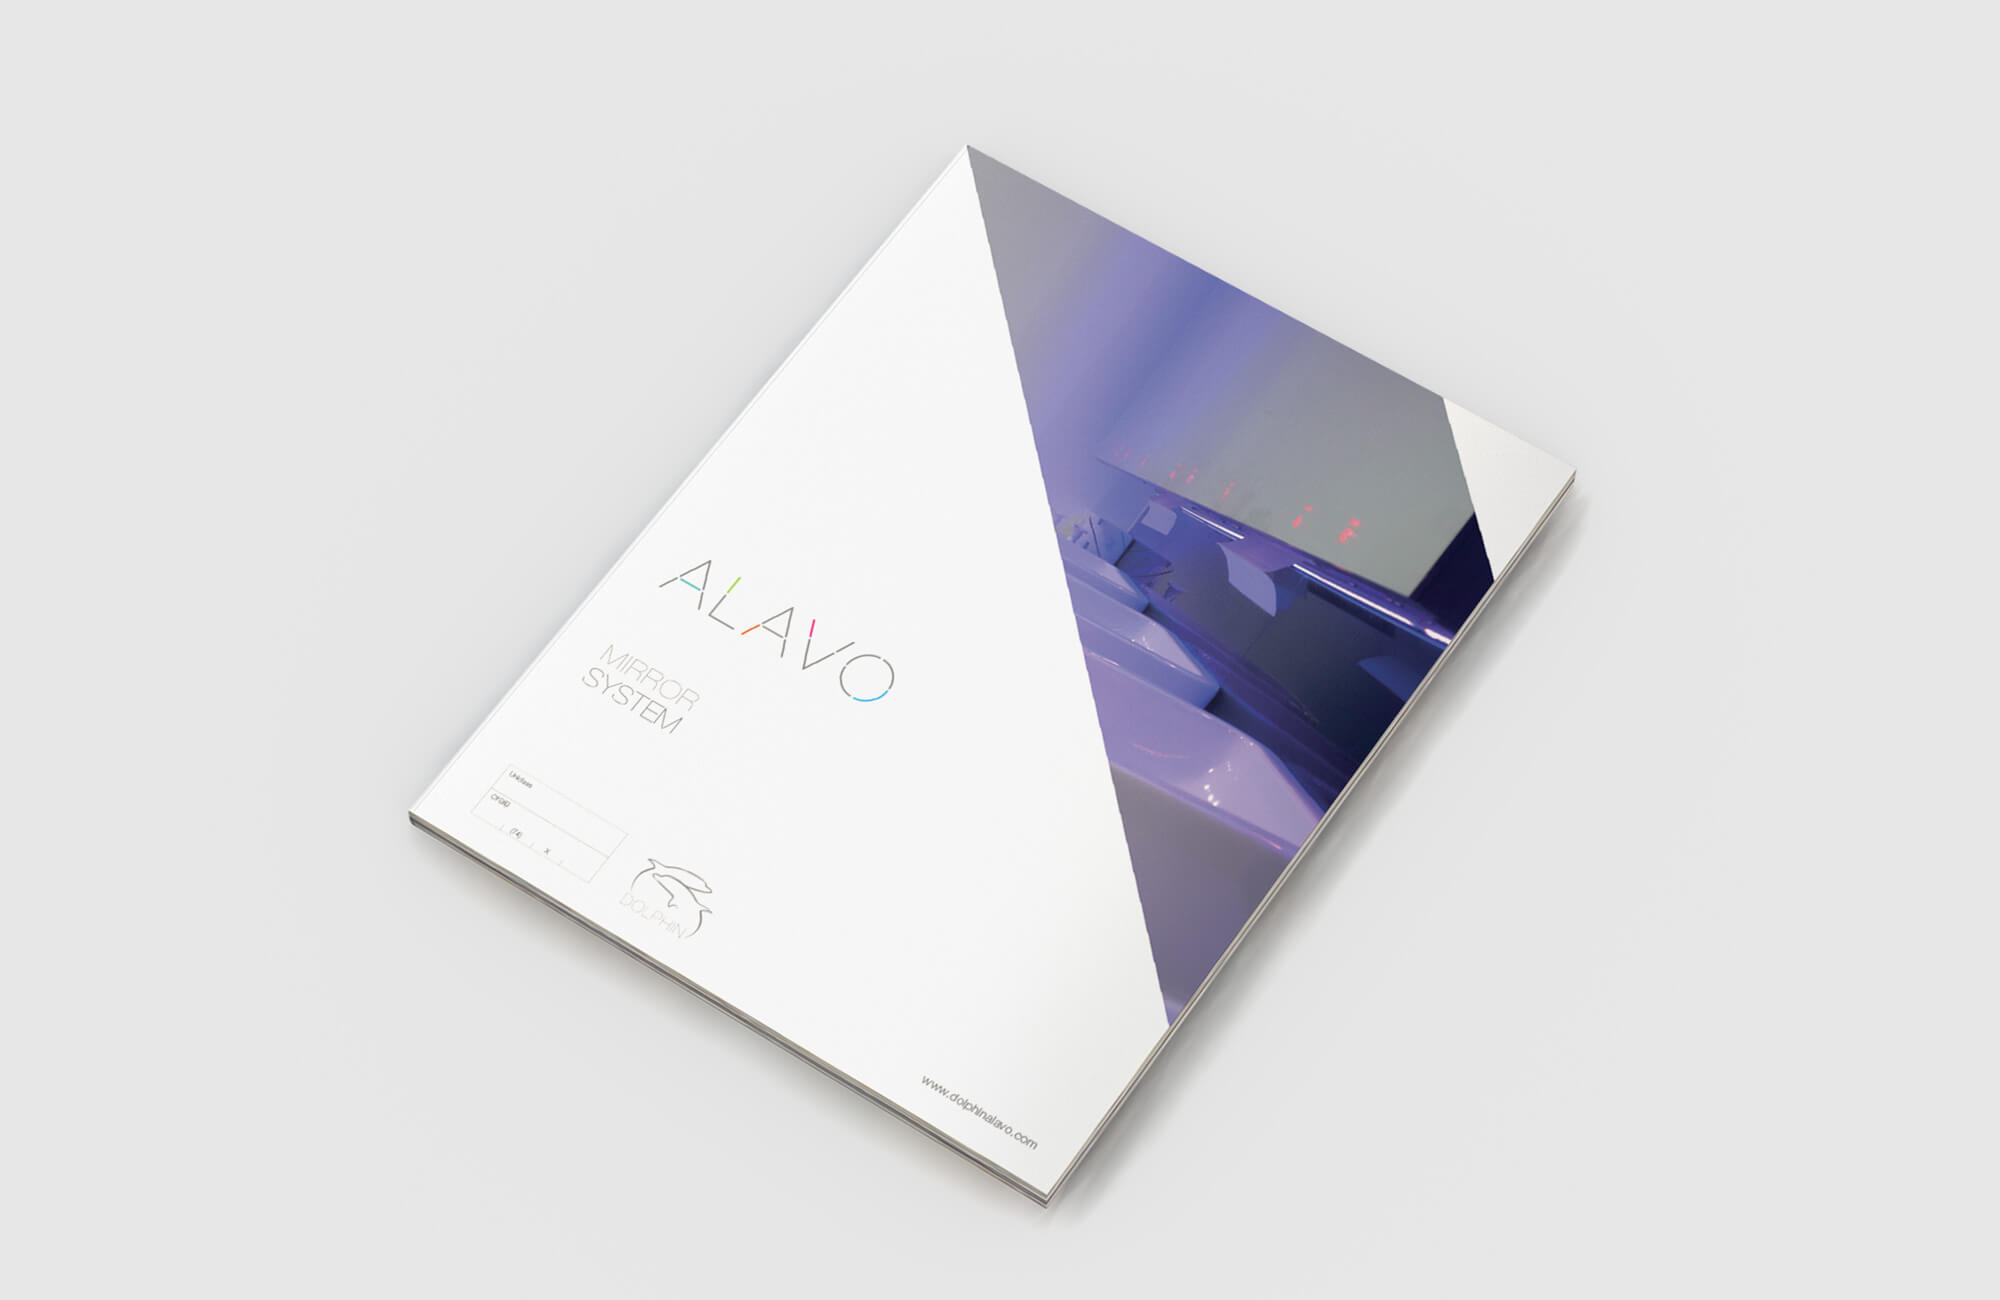 Alavo Brochure Cover Design Concept